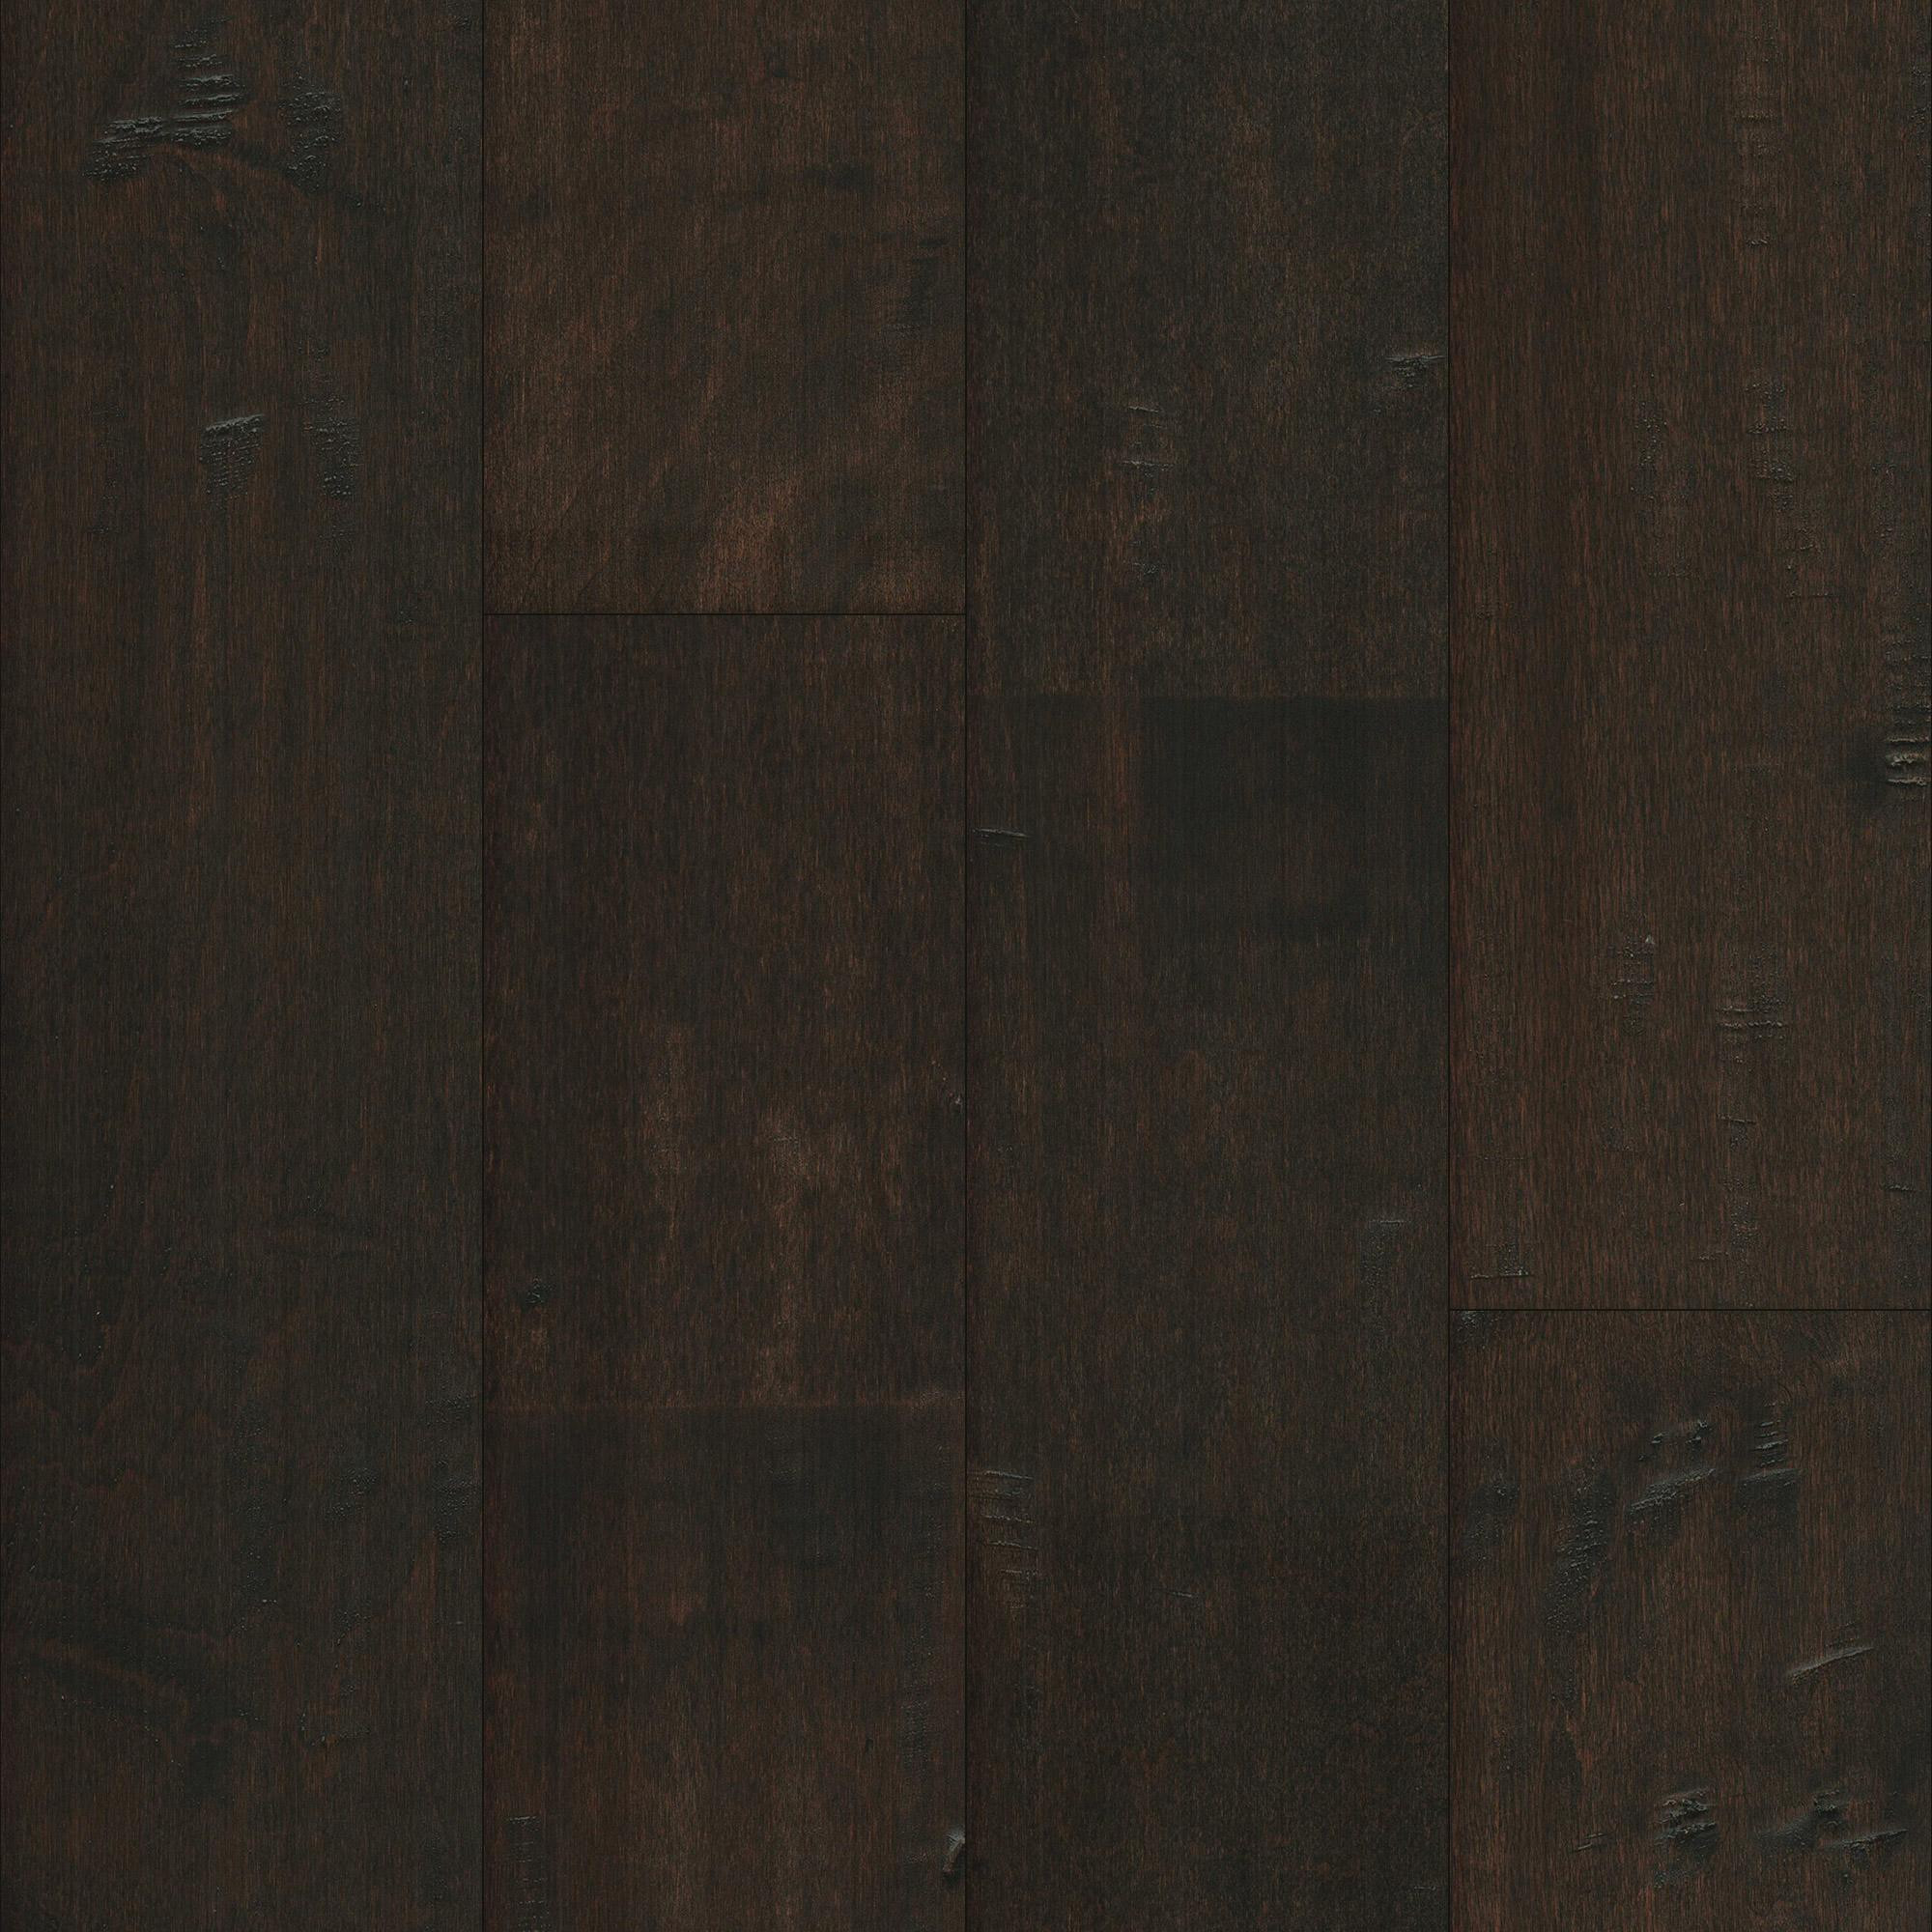 bruce engineered hardwood click lock flooring of mullican san marco sculpted maple dark mocha 5 engineered hardwood for mullican san marco sculpted maple dark mocha 5 engineered hardwood flooring